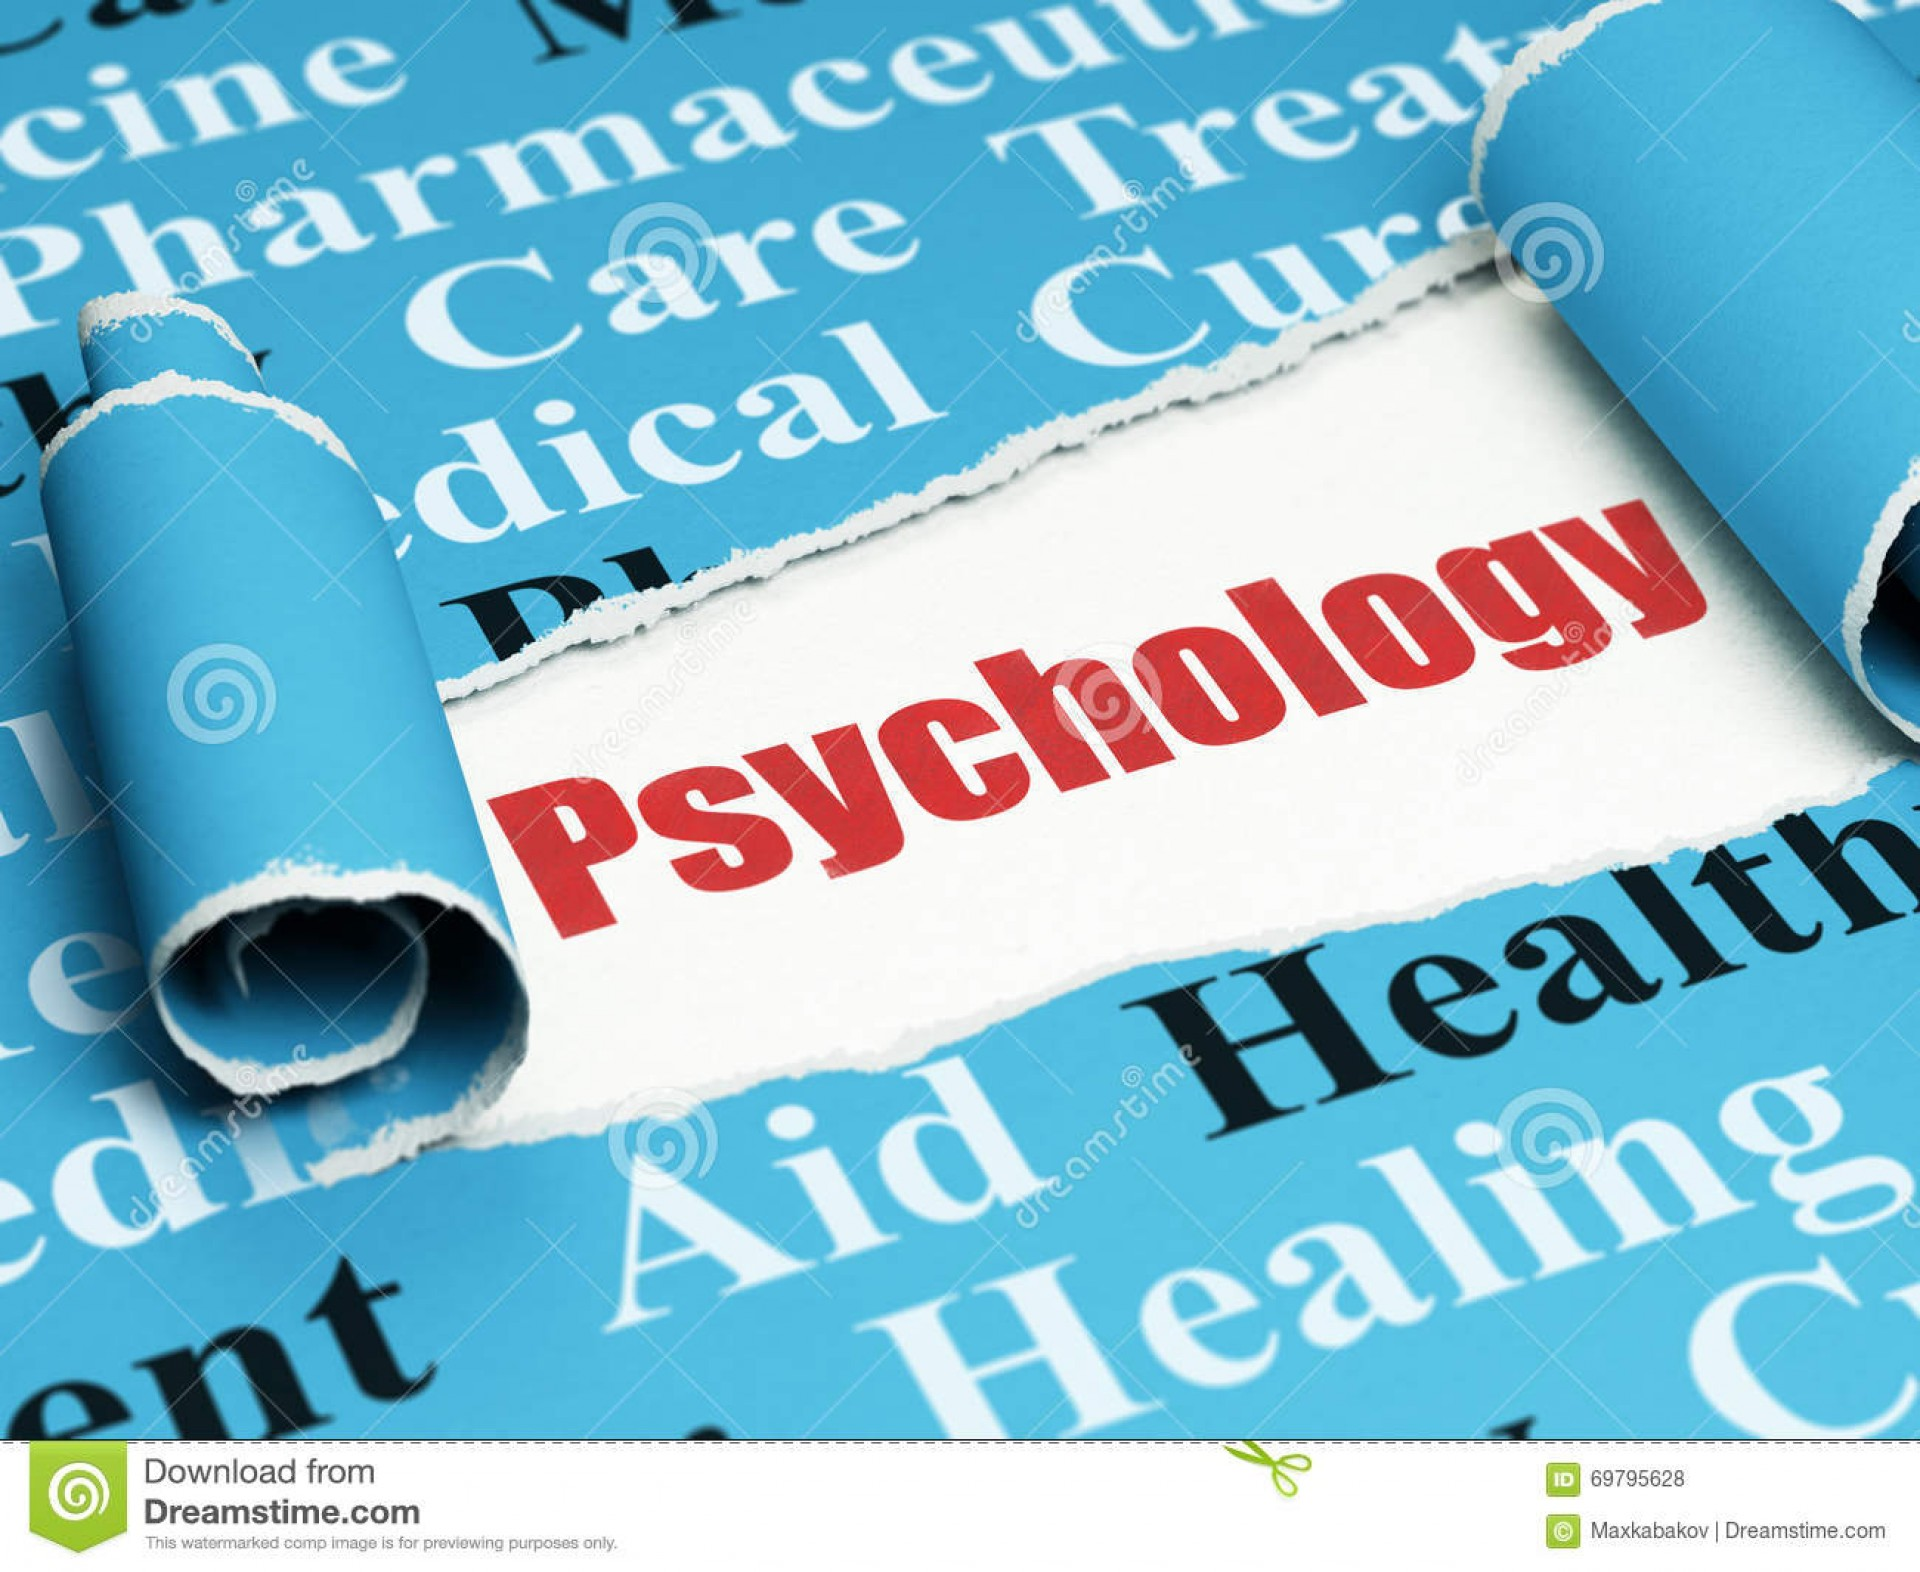 010 Research Paper Psychology On Dreams Health Concept Red Text Under Piece Torn Curled Blue Tag Cloud Rendering Singular Topics Articles 2017 1920